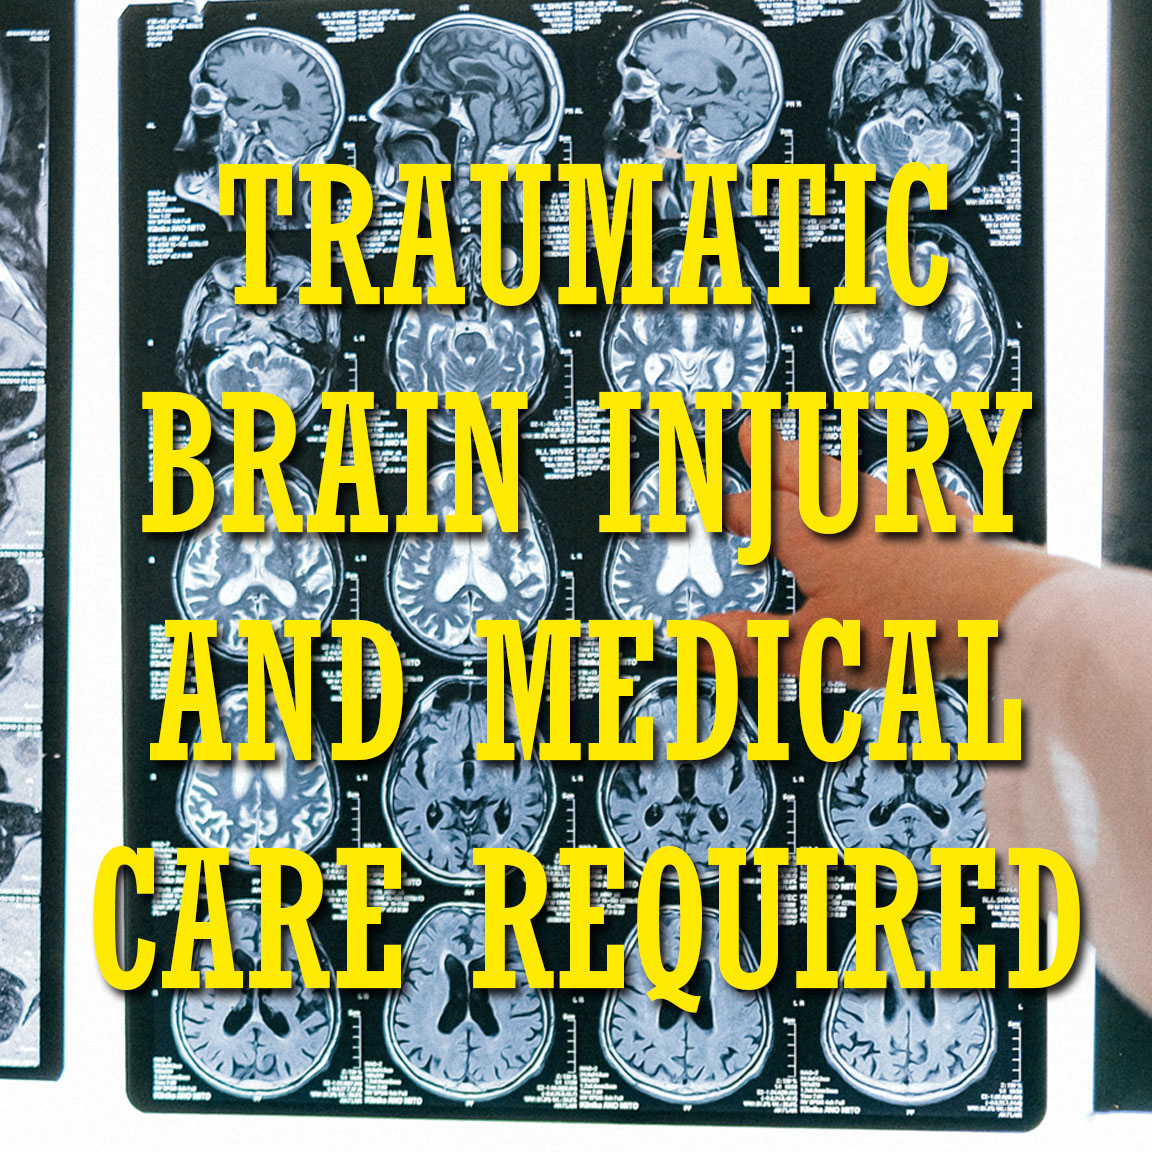 Levels of Traumatic Brain Injury And What Type of Medical Care is Required  https://t.co/DHOT4hVRVo  #personalinjury #lawyer #attorney #injured #law #injurylawyers #injury #caraccident #lawfirm #litigation #attorneyatlaw  #newyork #newyork #newyorkcity #brooklyn #manhattan https://t.co/OLWEWq5J36